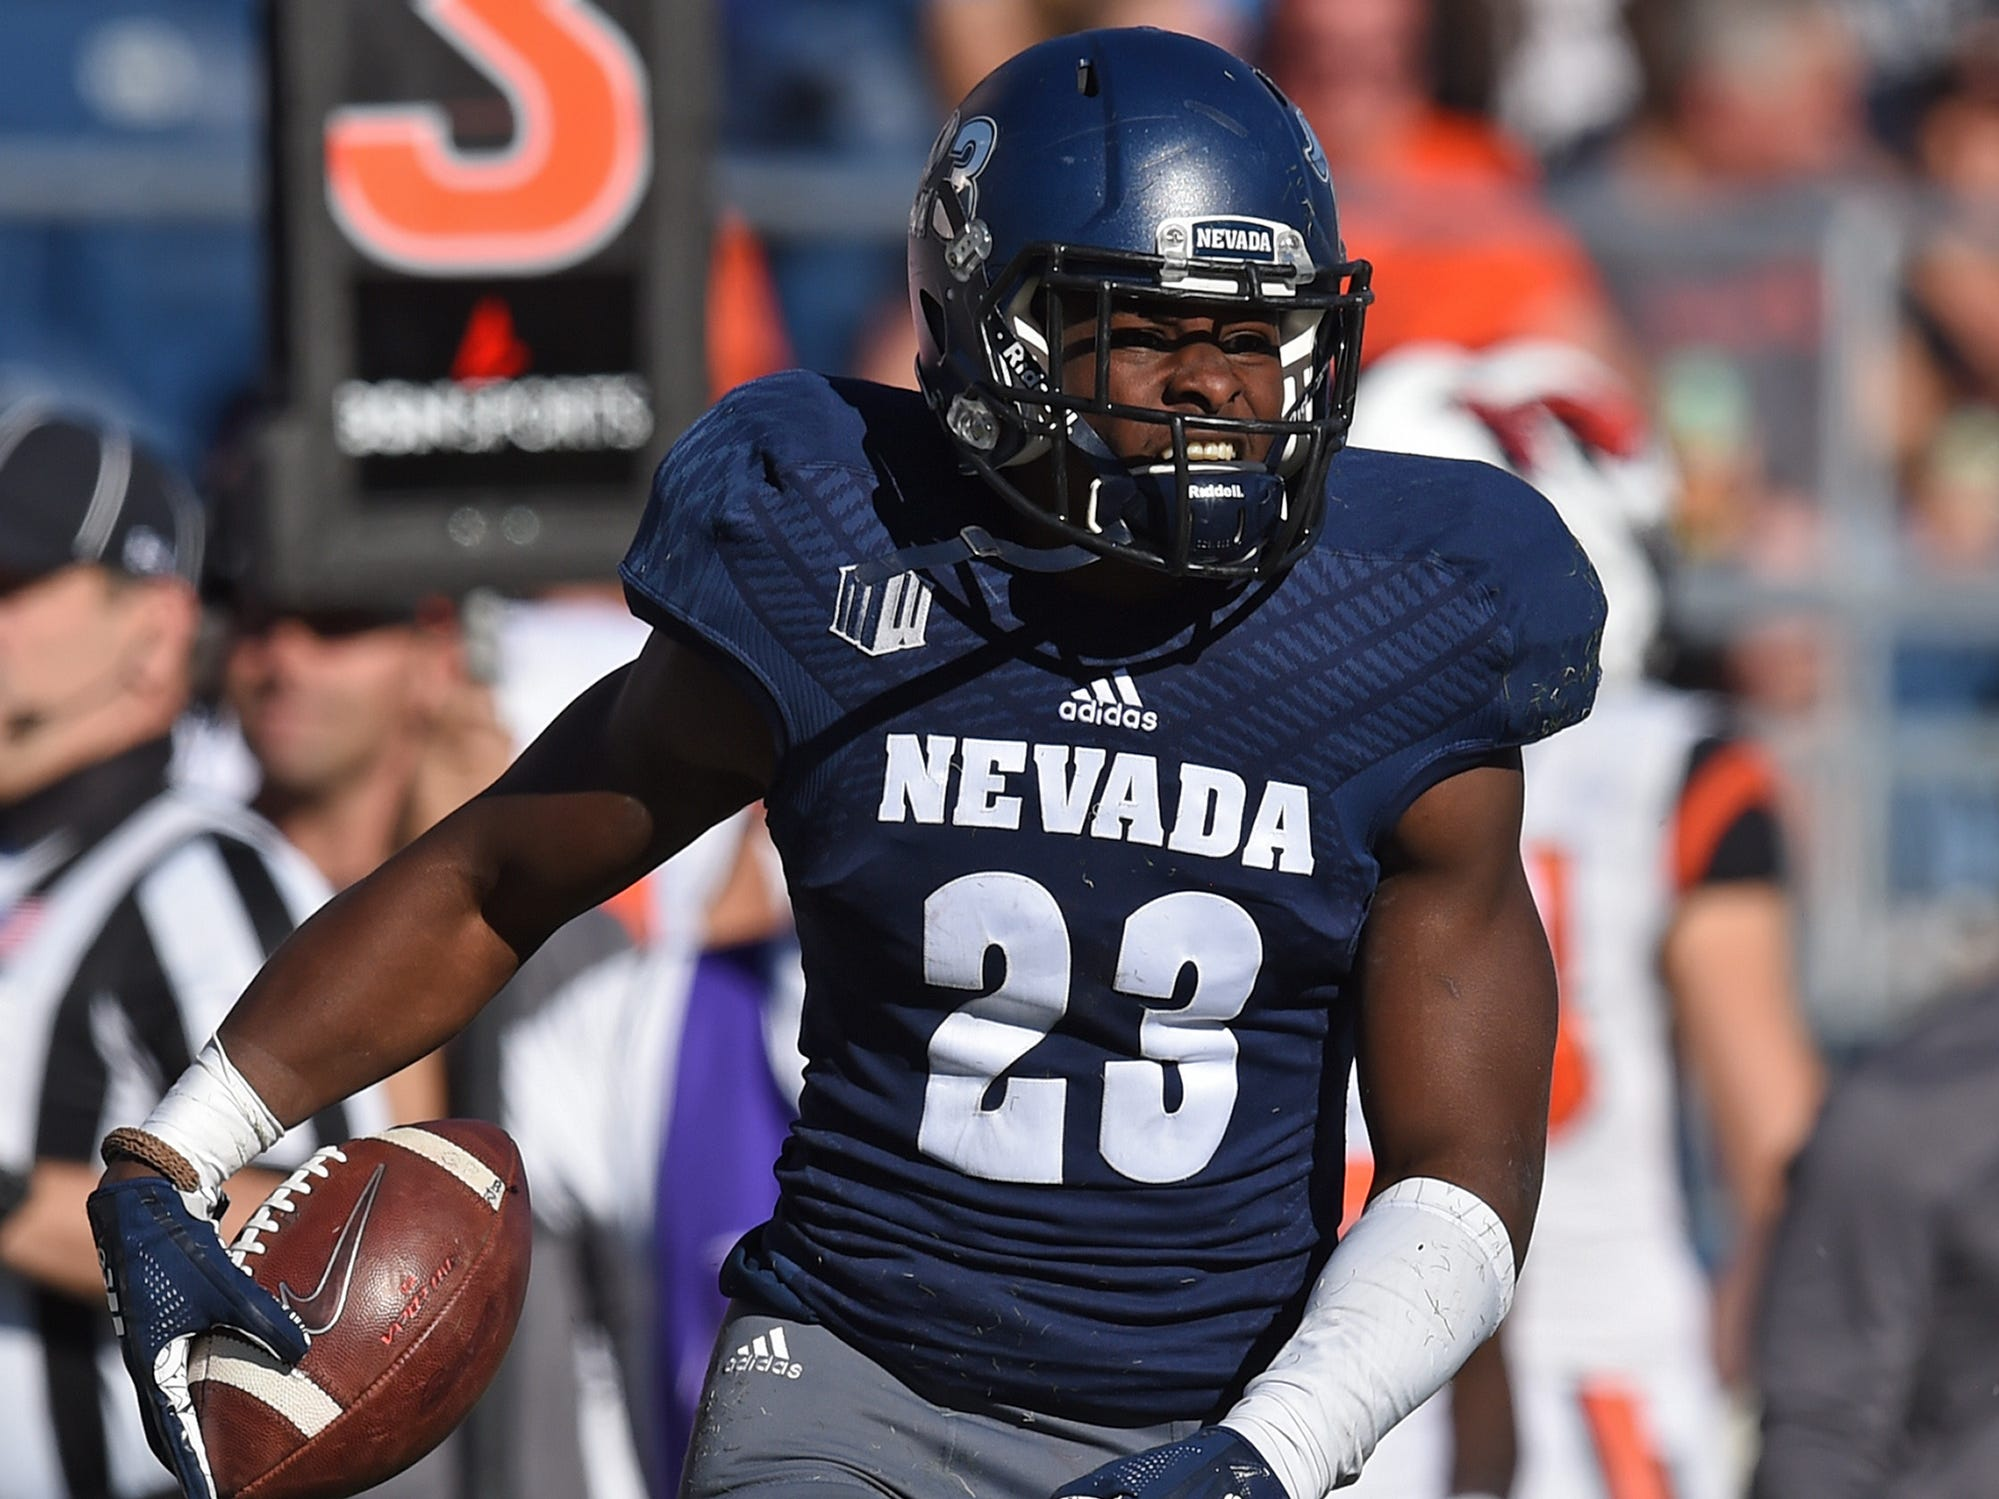 Nevada RB Kelton Moore moves the ball against Oregon State at Mackay Stadium on Sept. 15, 2018.